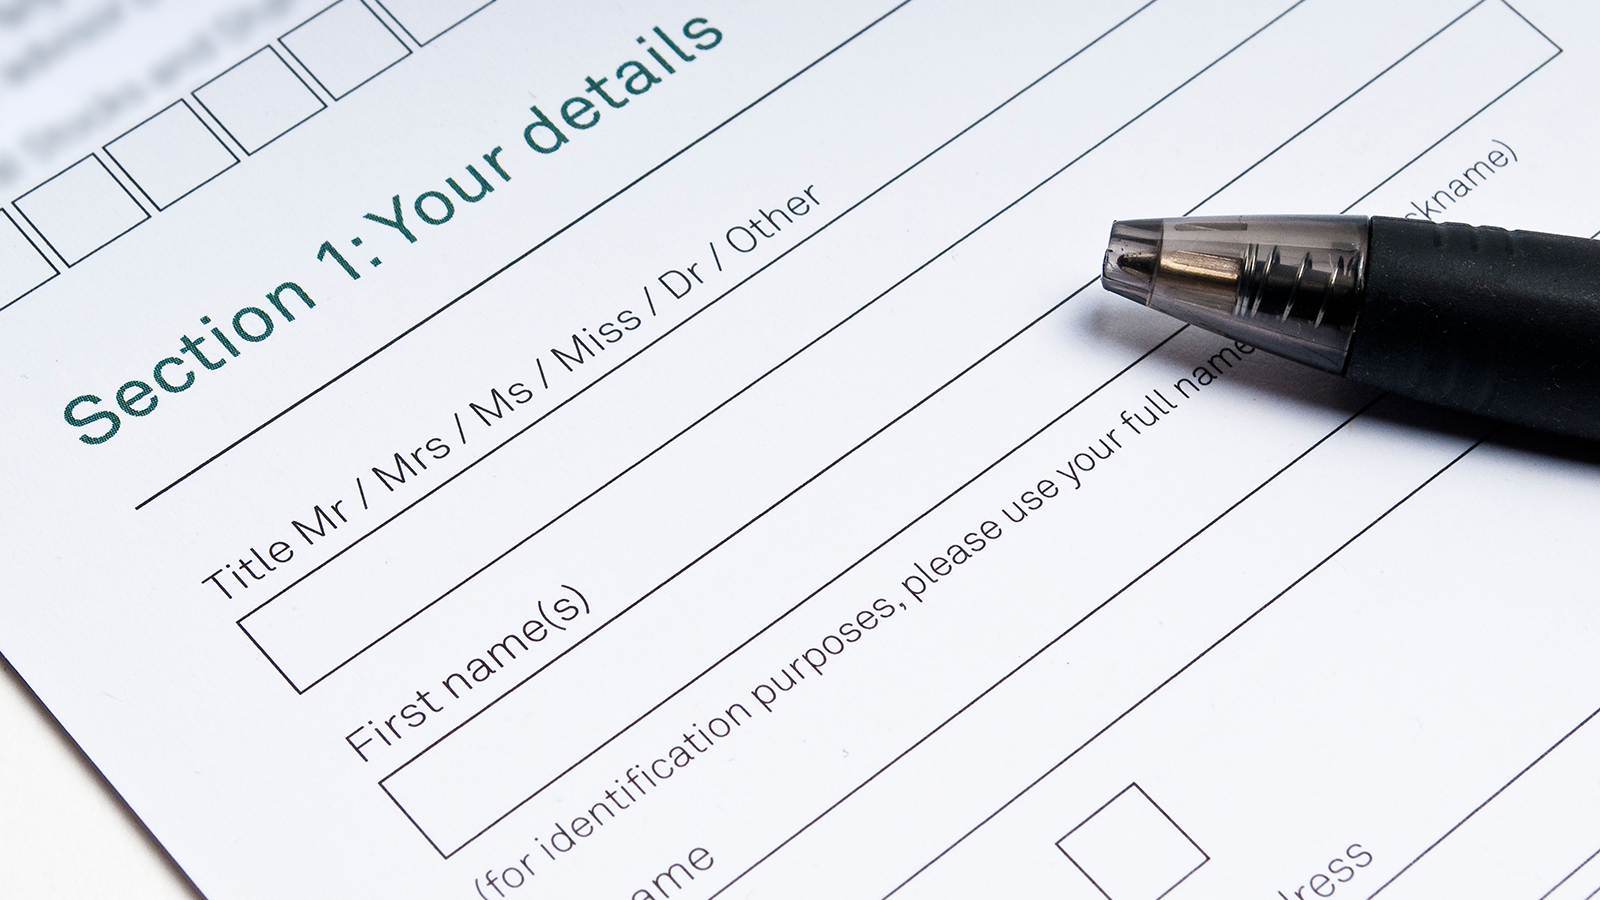 Application Form To Fill In With Your Details And Pen